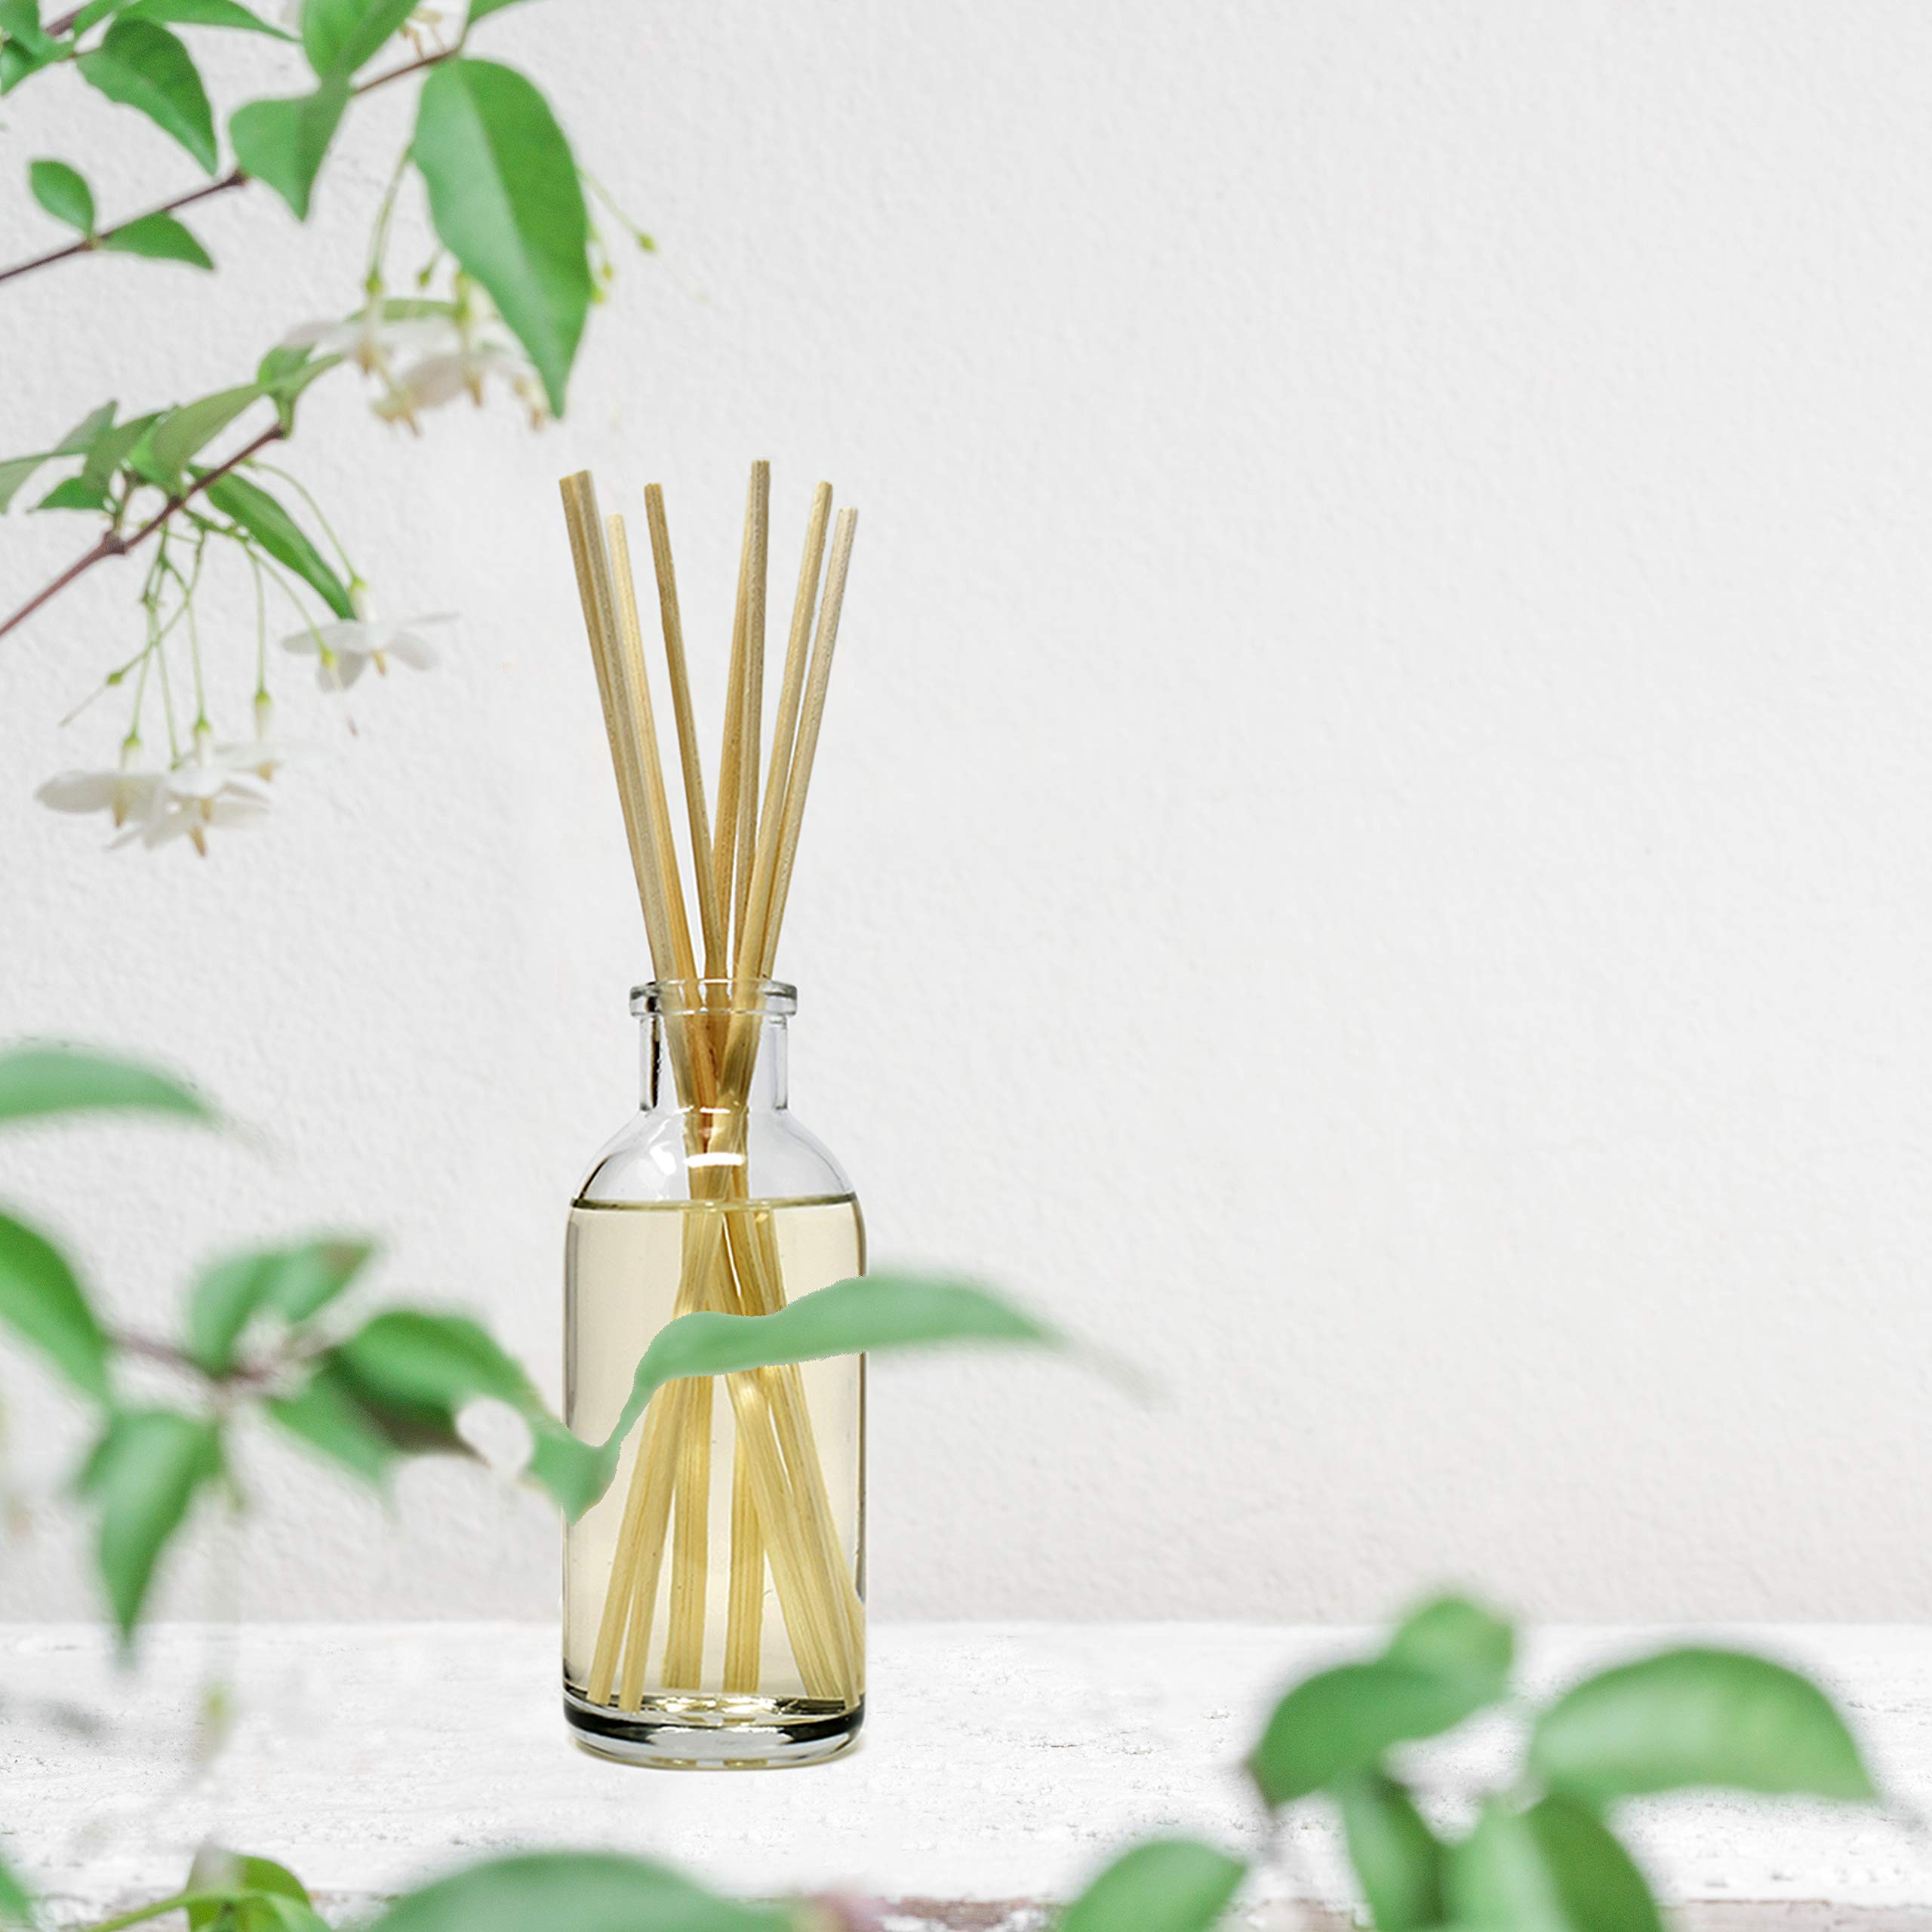 Urban Naturals Lavender Sandalwood Essential Oil Reed Diffuser Set with Natural Bamboo Reeds Sticks | Aromatic Lavender, Golden Amber & Woods | Vegan. Made in The USA by Urban Naturals